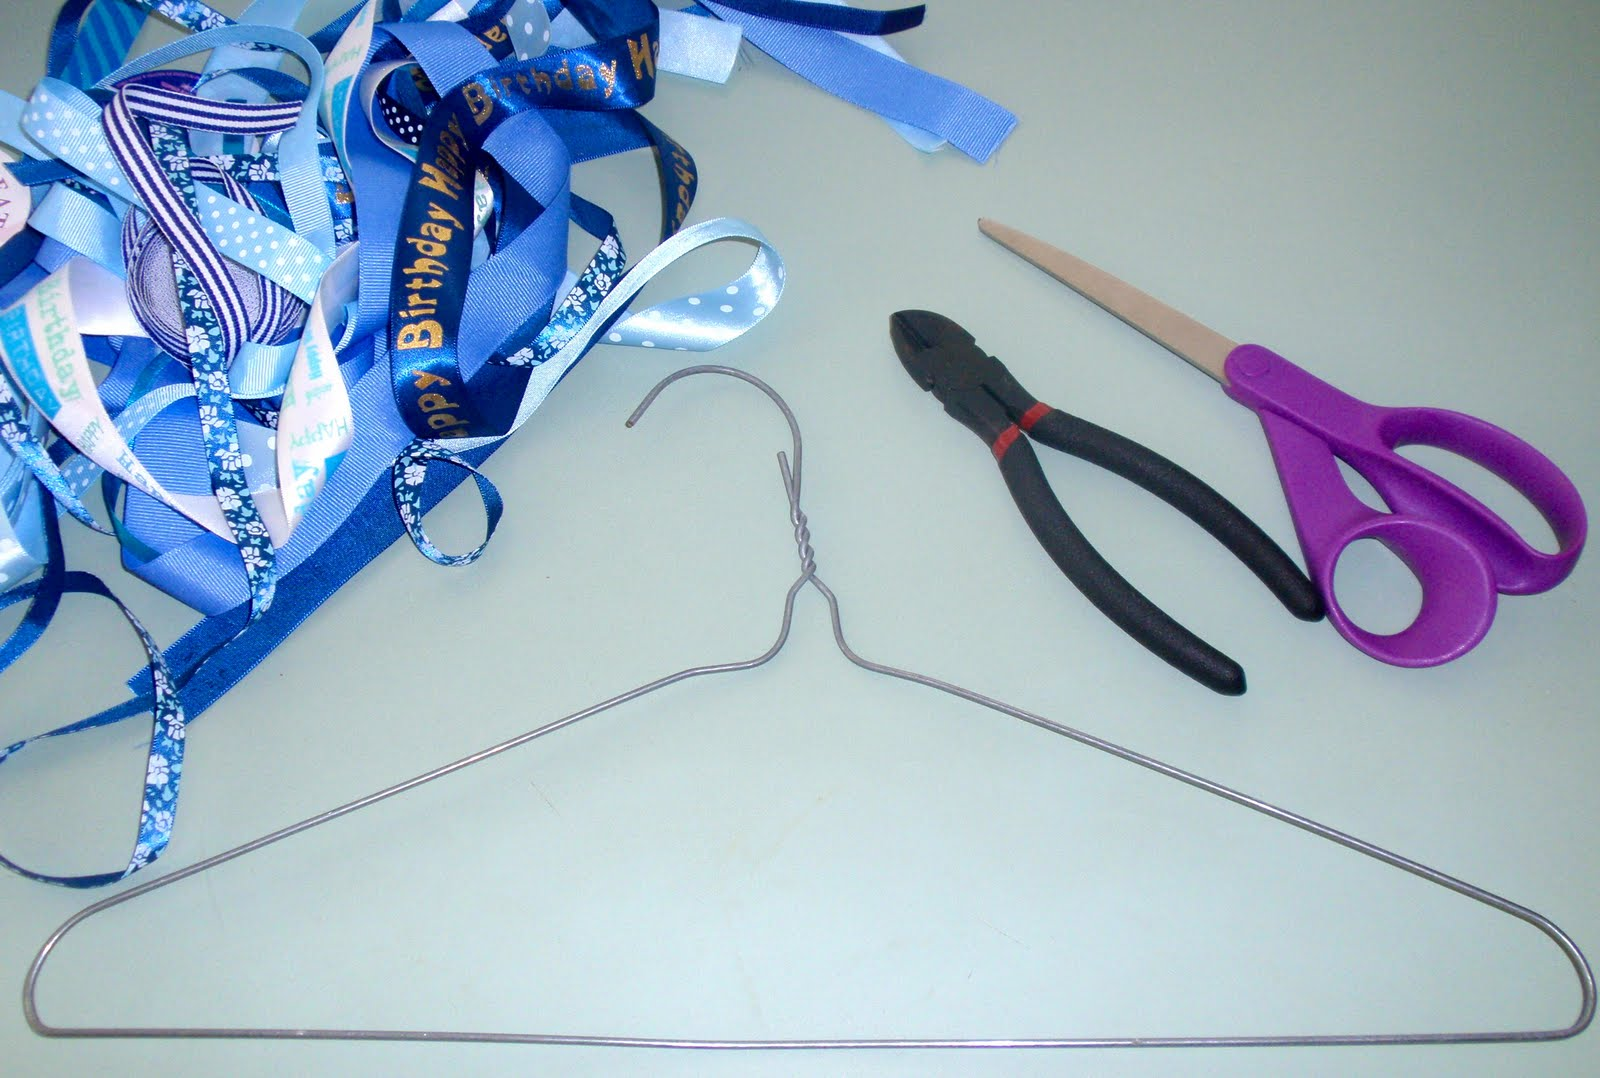 Ribbon wreath tutorial on wire hanger - Diy Tutorial From A Catch My Party Member How To Make A Ribbon Wreath